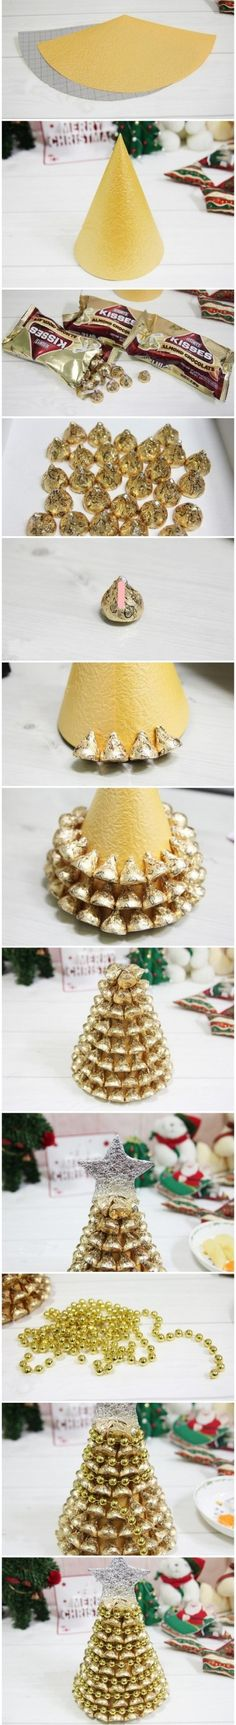 DIY Christmas Tree craft - Would be pretty with different colors too! Diy Christmas Tree, Christmas Projects, Winter Christmas, All Things Christmas, Christmas Holidays, Christmas Decorations, Tree Decorations, Christmas Ideas, Xmas Trees